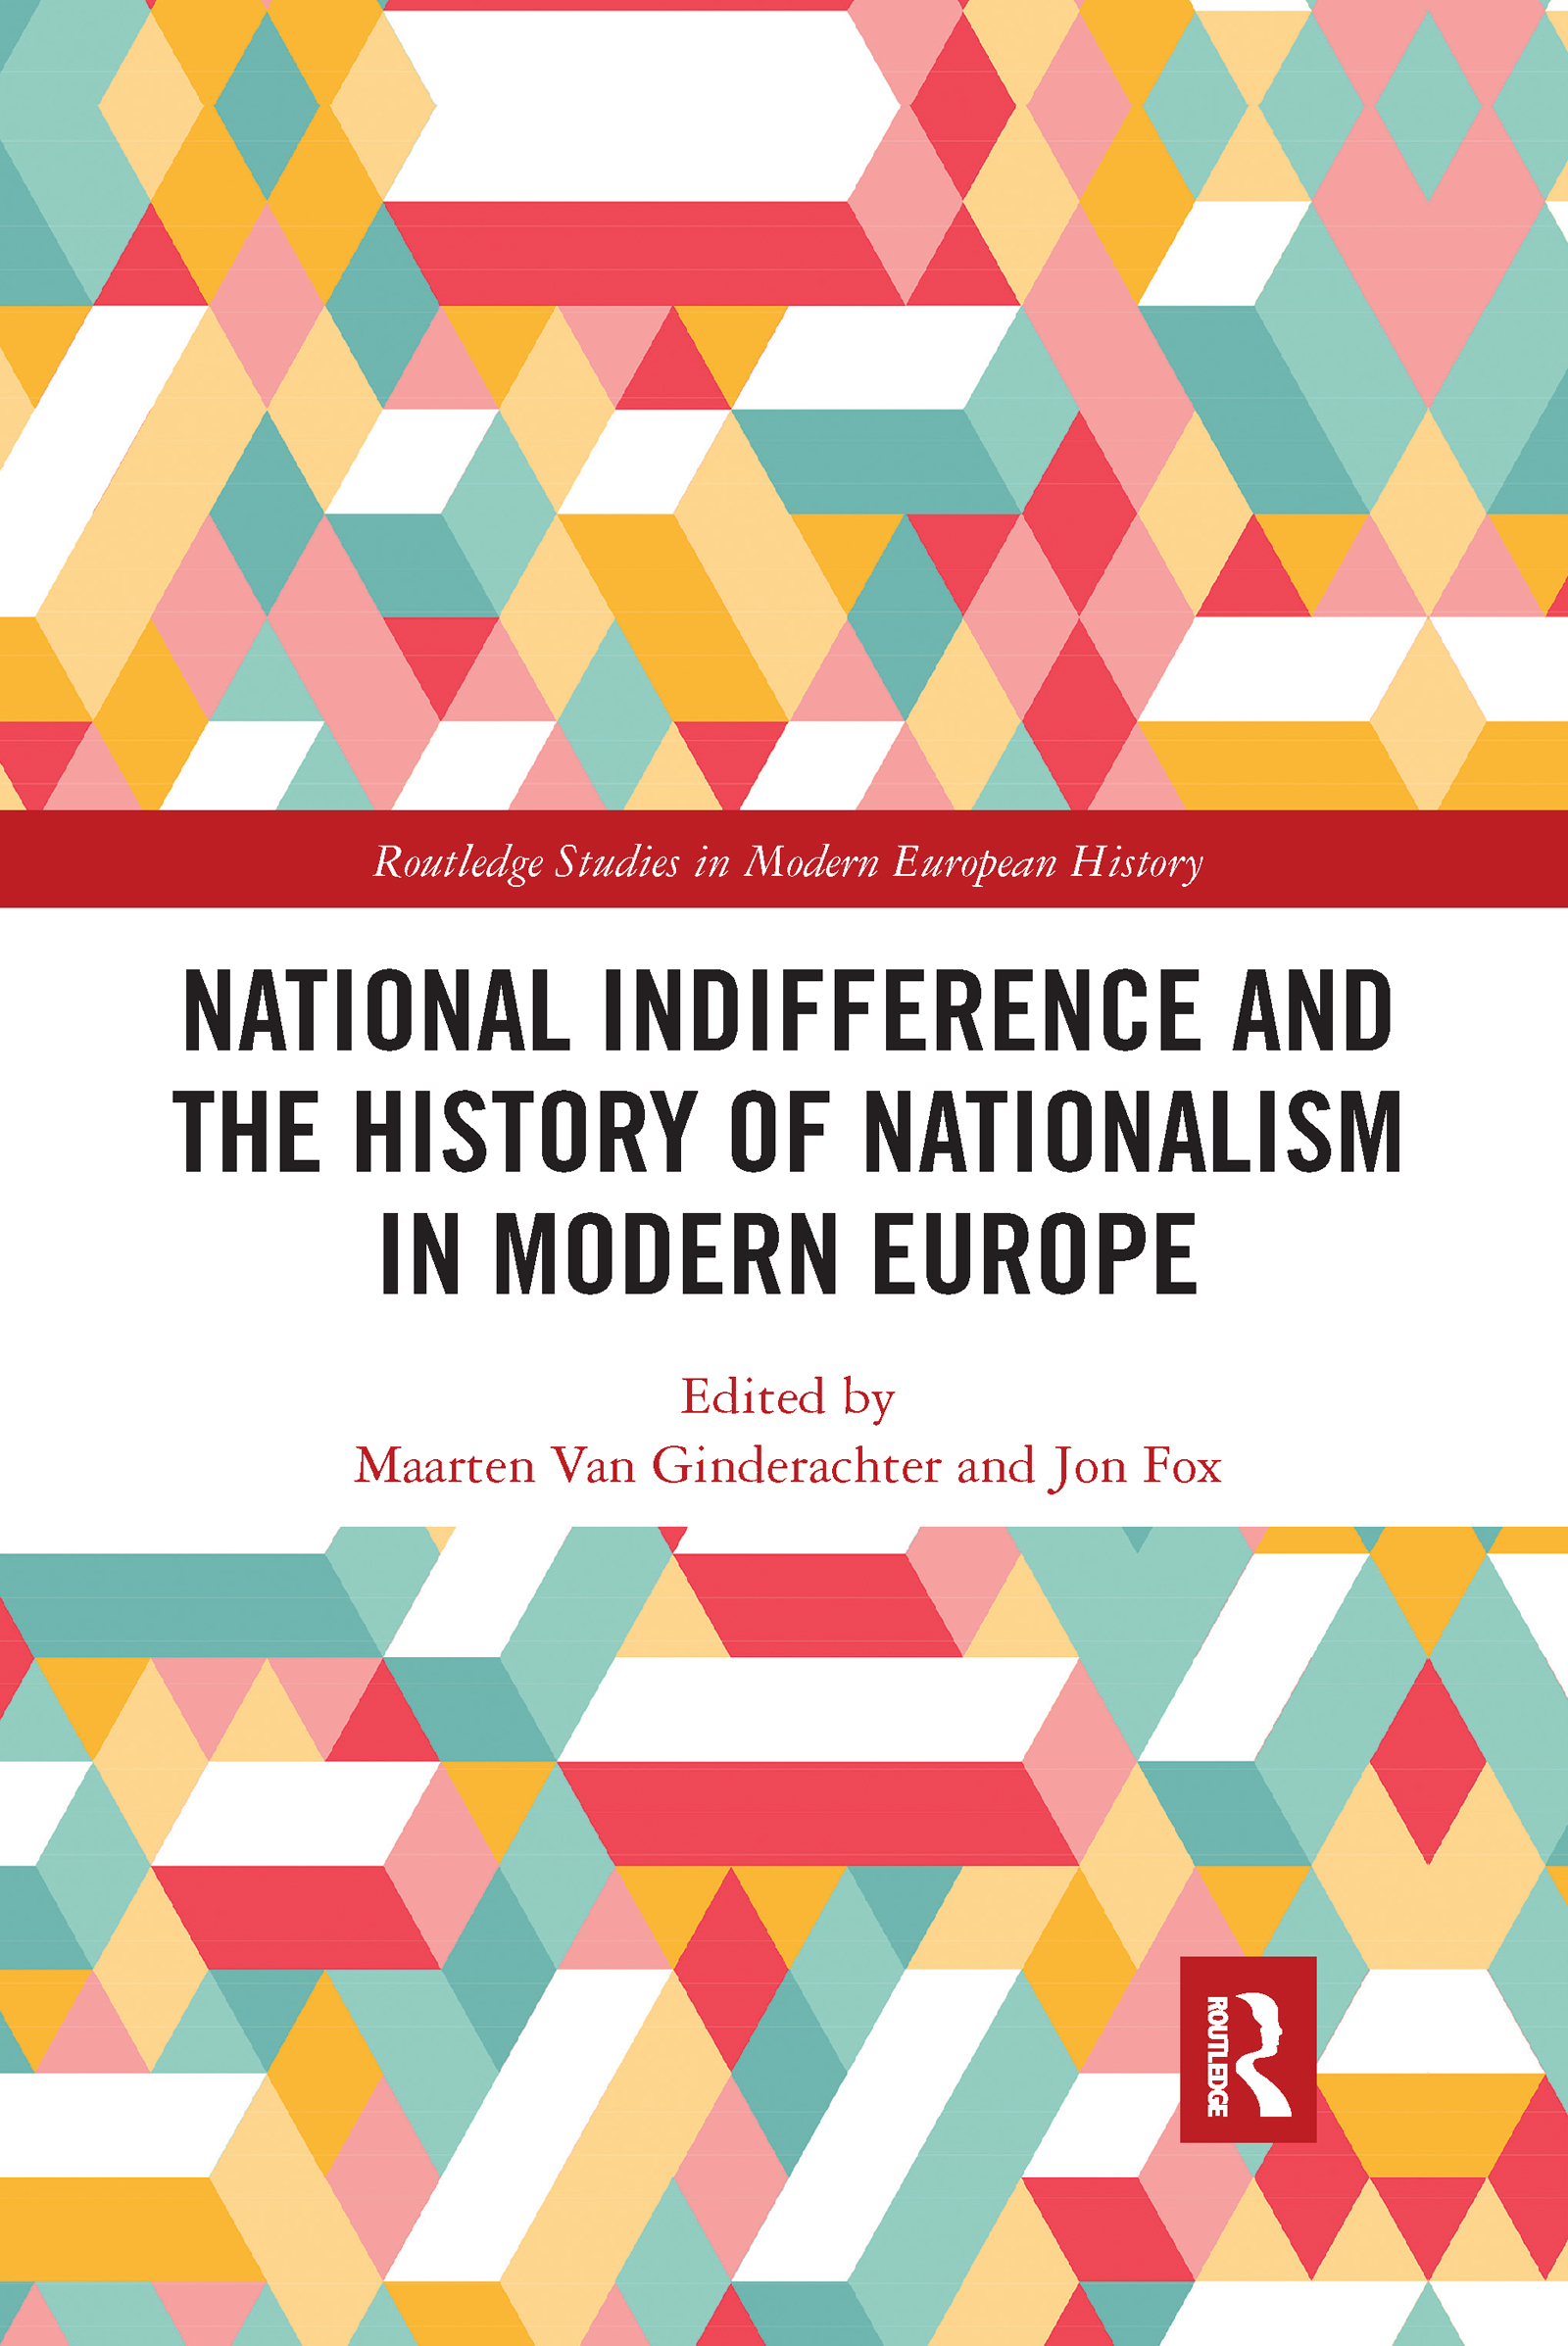 National indifference and the History of Nationalism in Modern Europe